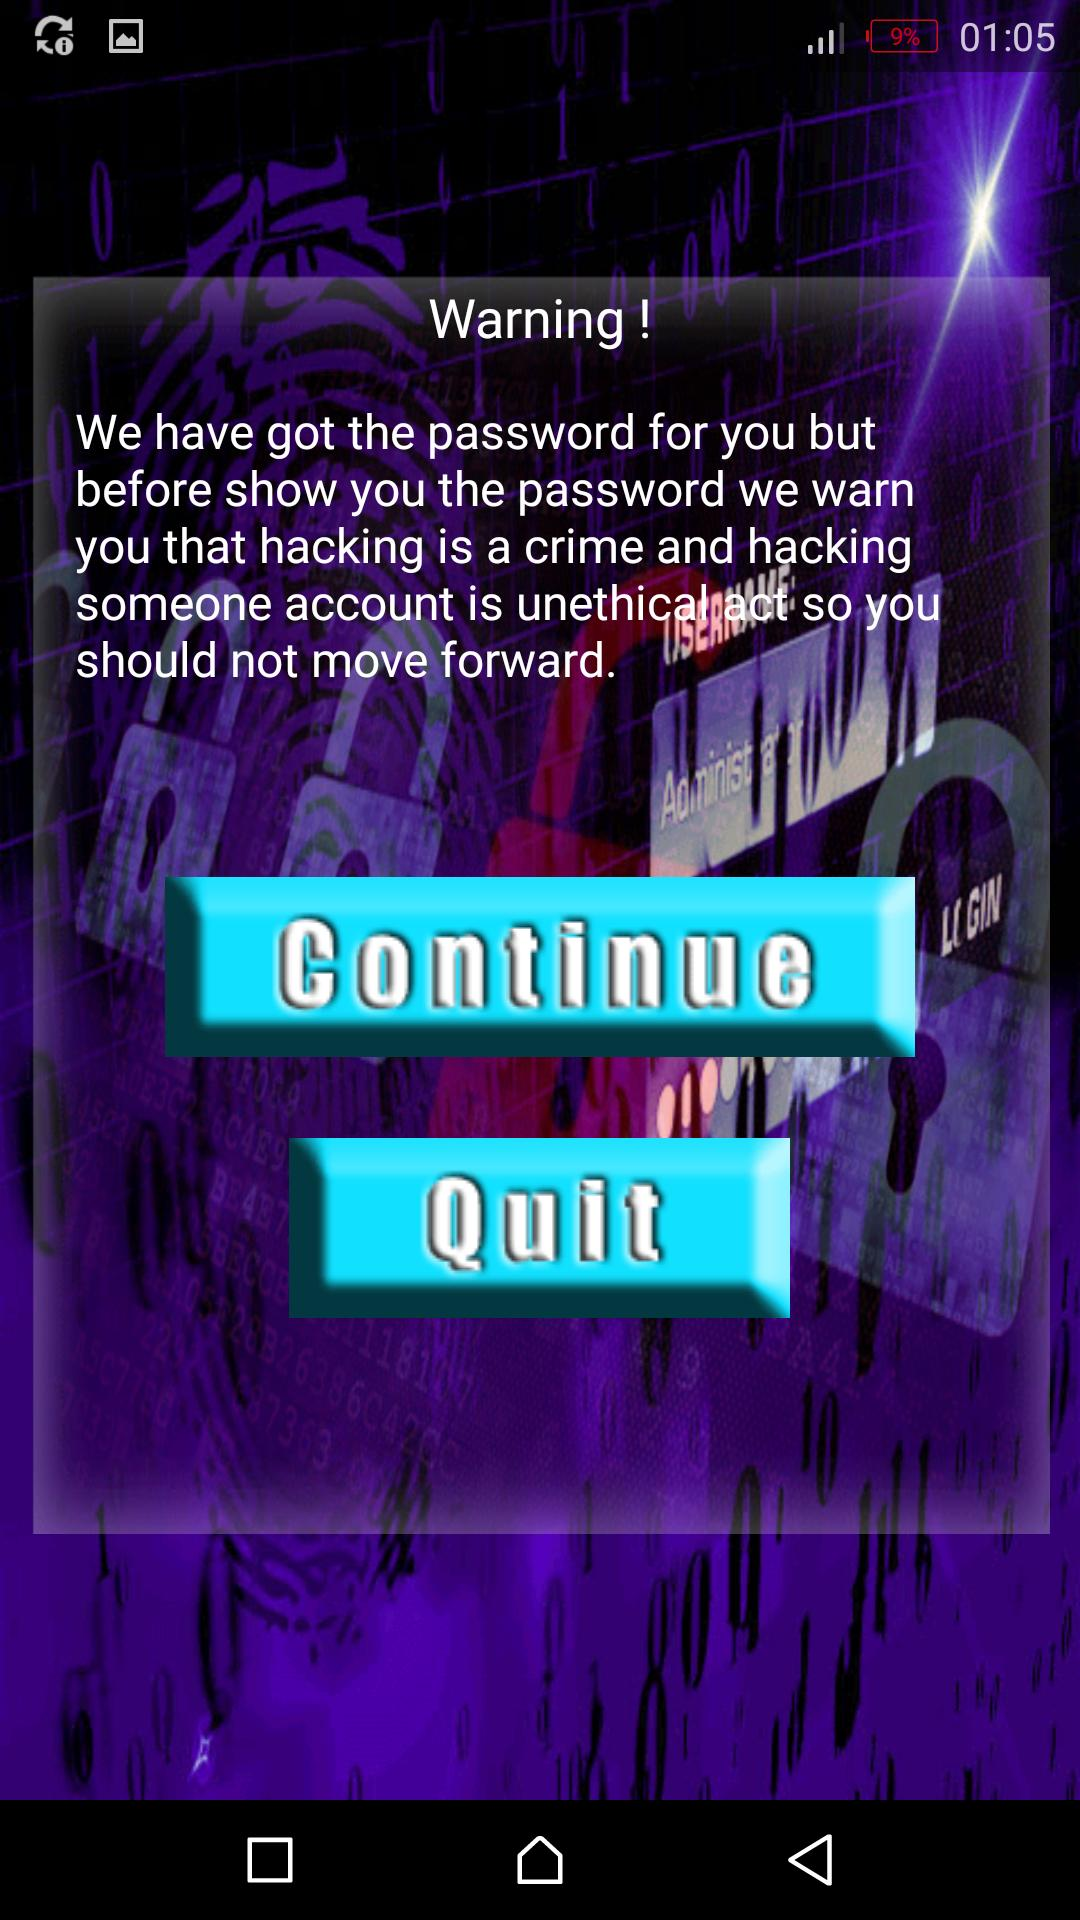 Download Instagram Account Hacker Tool Apk For Free On